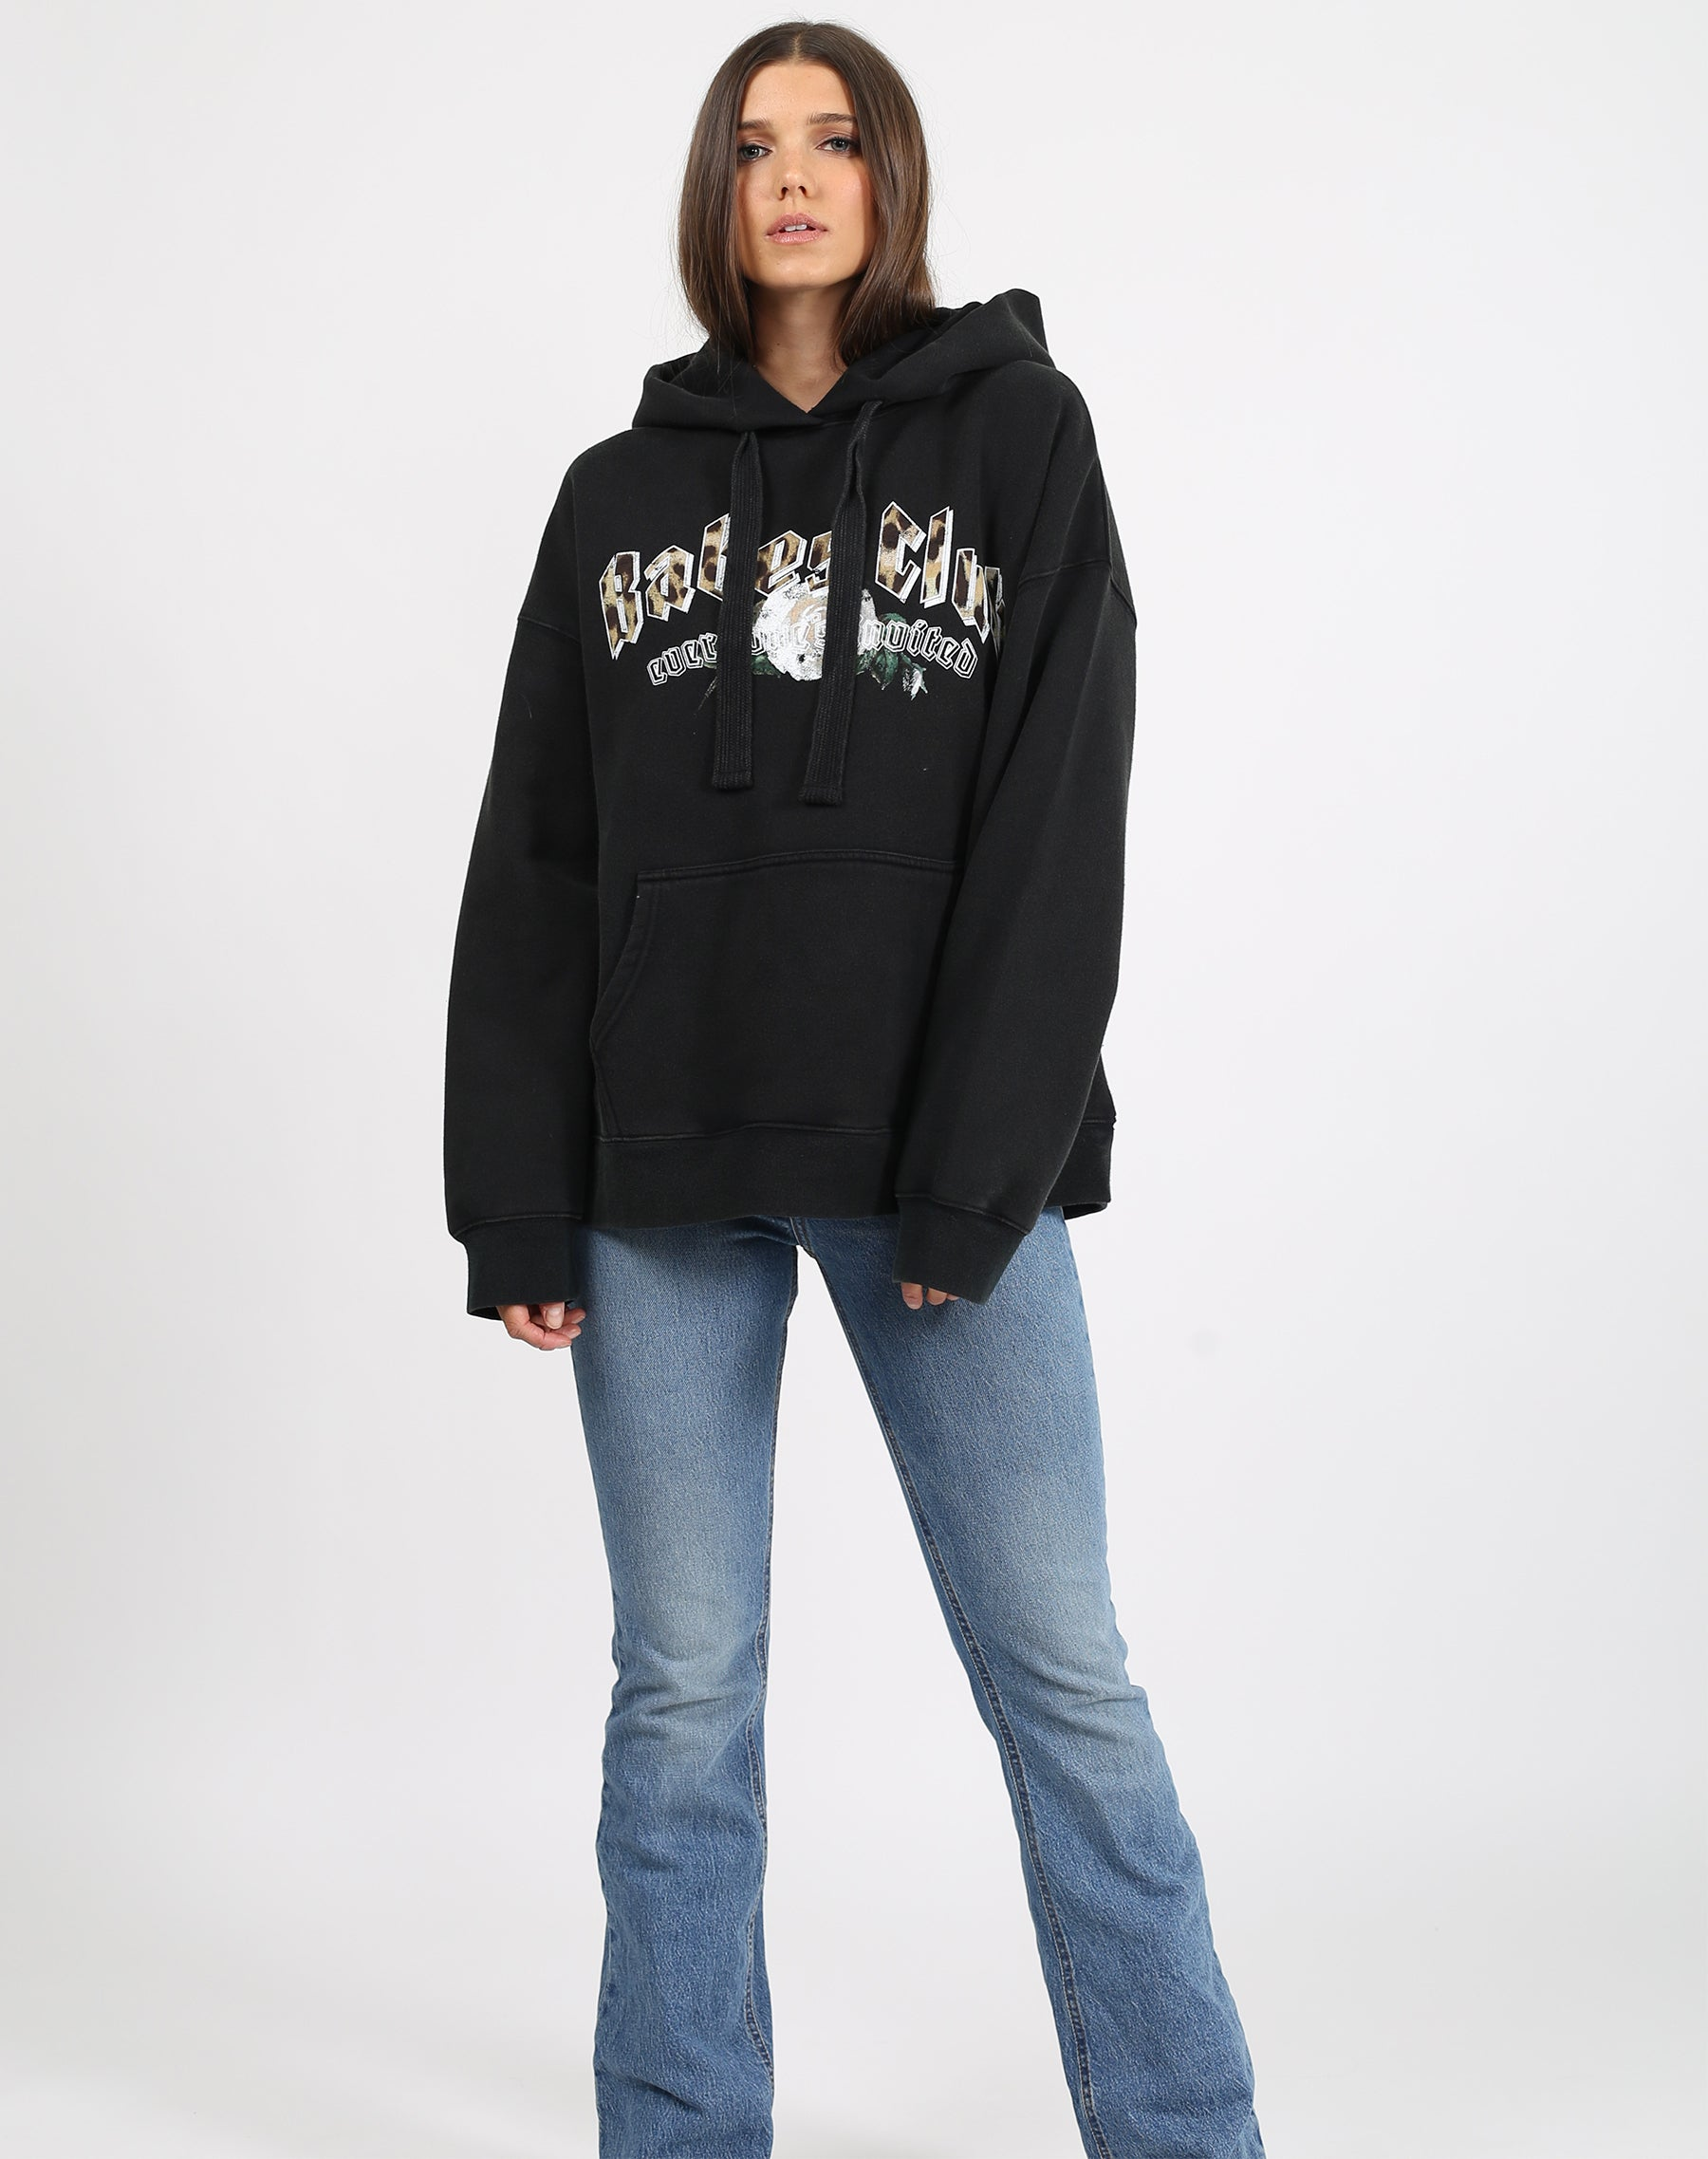 This is a photo of a model wearing the babes club big sister hoodie in acid wash black by brunette the label.